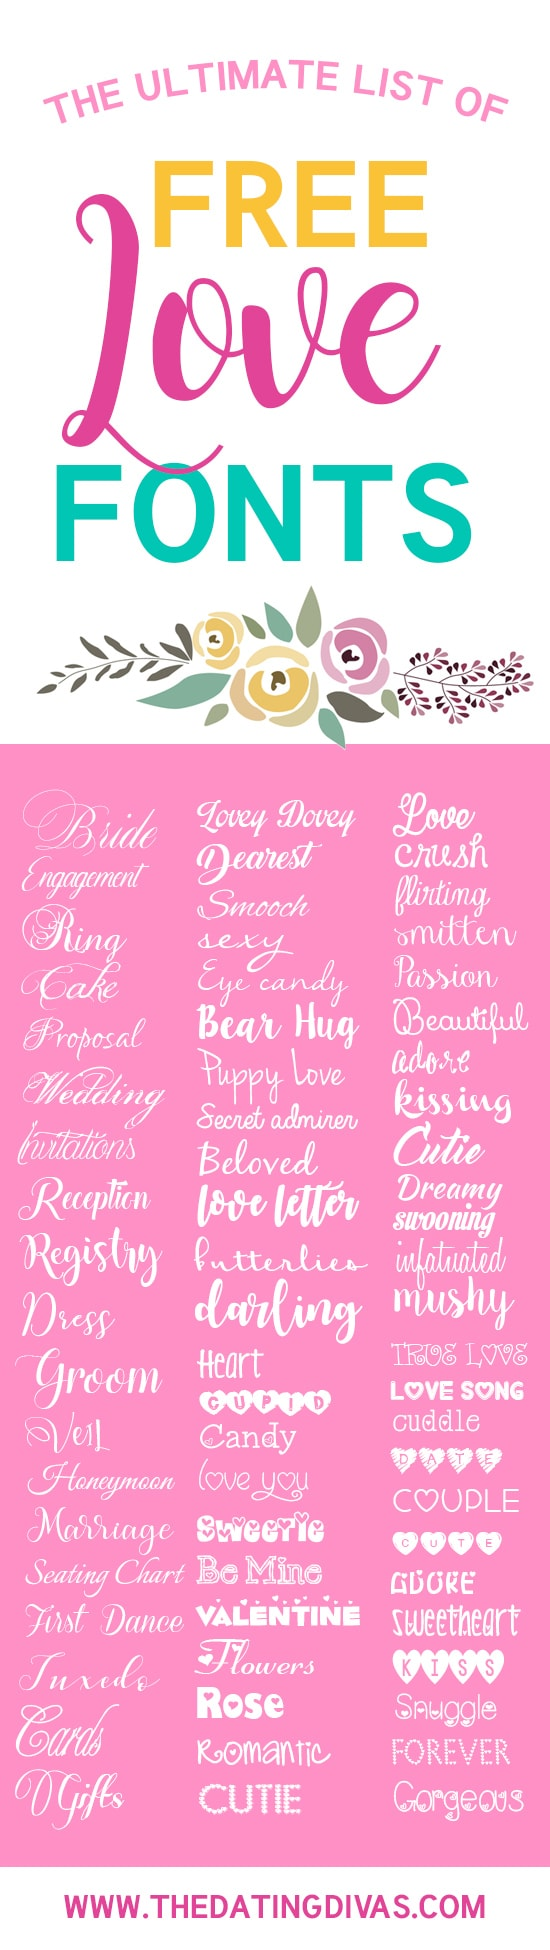 The BEST list of free love fonts on the internet!! It seriously has every romantic font in the book! #freelovefonts #romanticfonts #weddingfonts #thedatingdivas